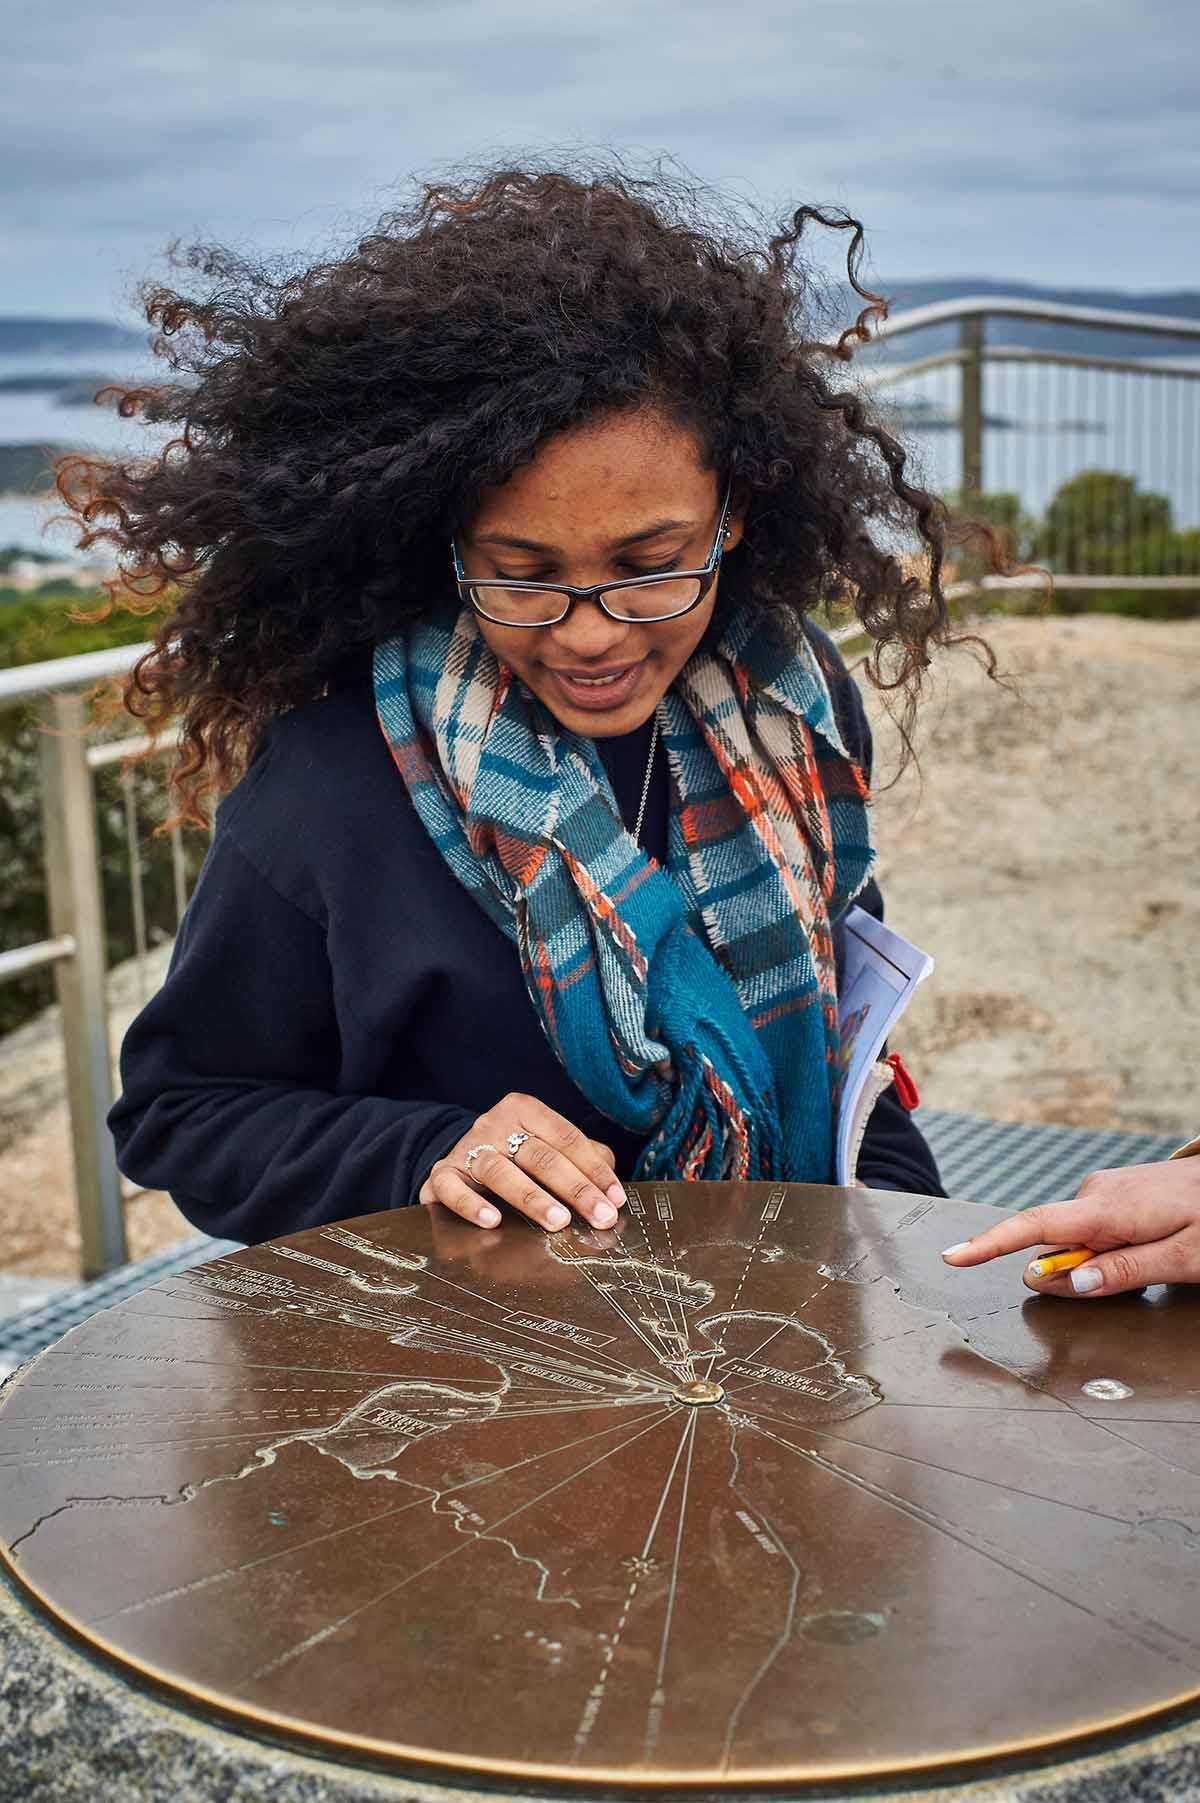 Student examines a brass map marker at a scenic overlook in Australia The Department of Geography co-sponsors, with the Environmental Studies Program, a semester-long study group at the University of Wollongong (UoW) in Australia during both the  fall and spring semesters.